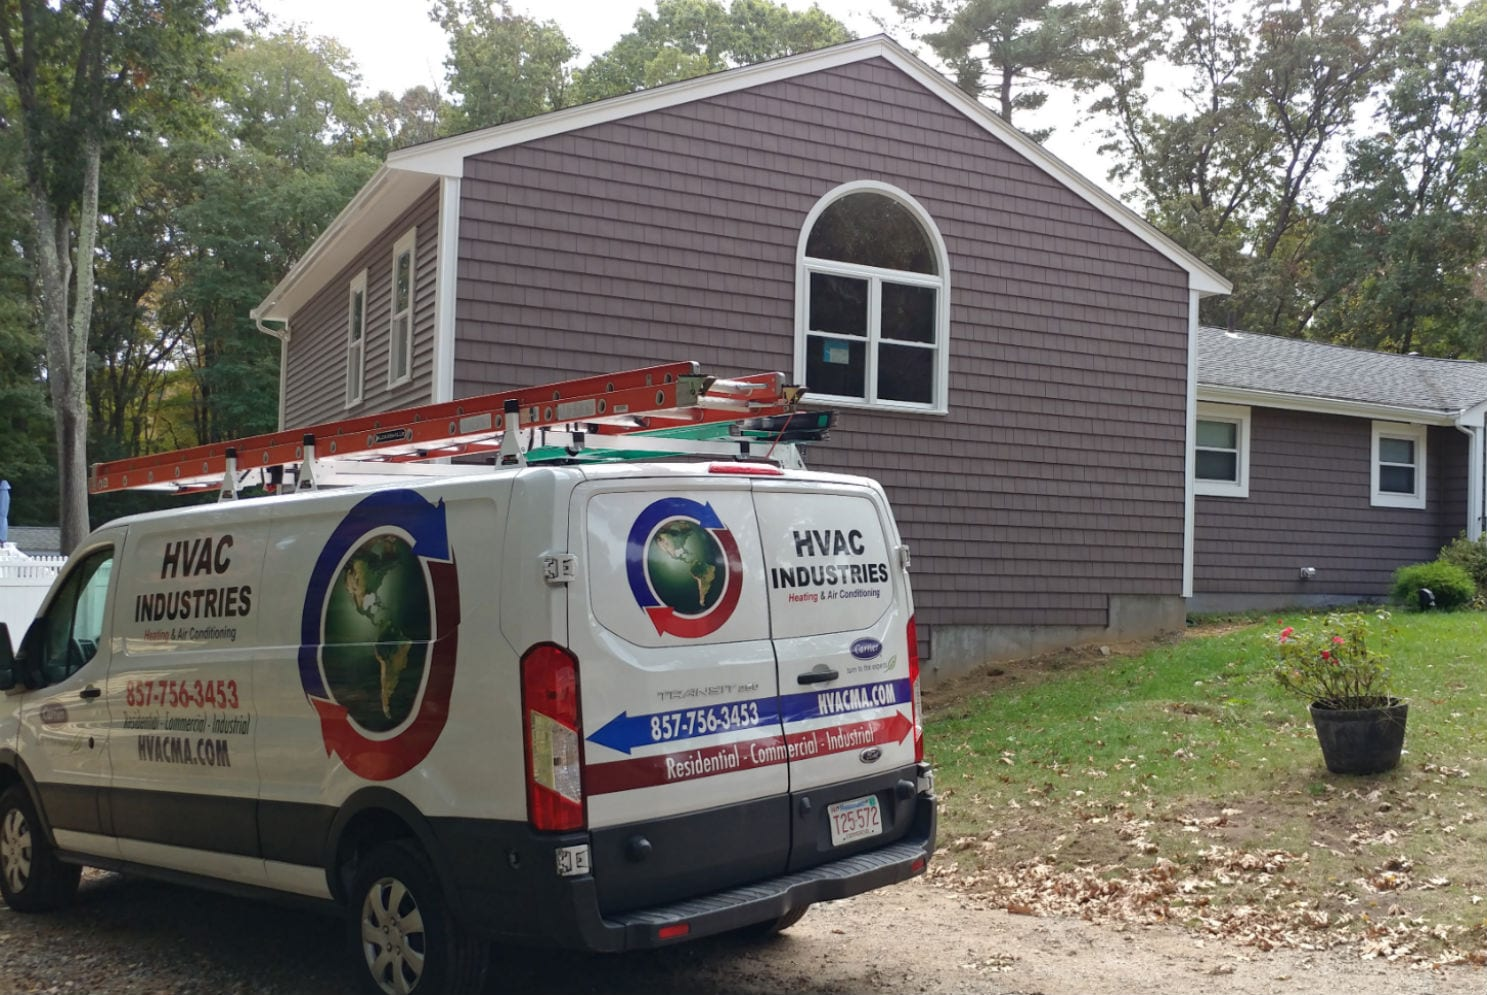 Wilton Dr, Wilmington - Residential HVAC Project